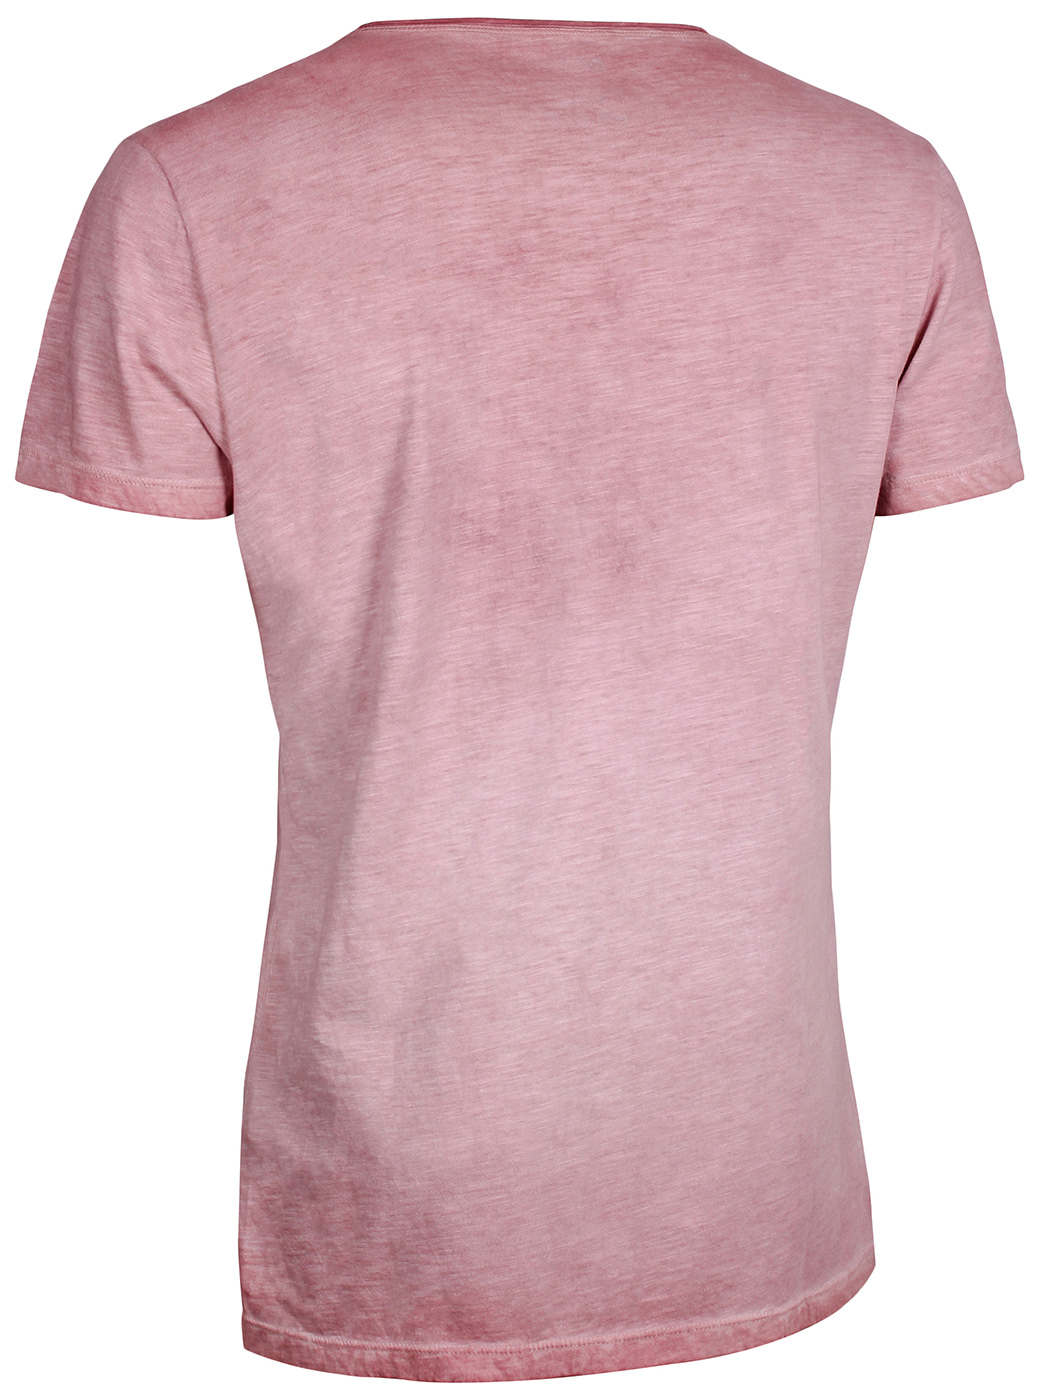 "Yoga T-Shirt ""Deep O"" Slim Fit - red"